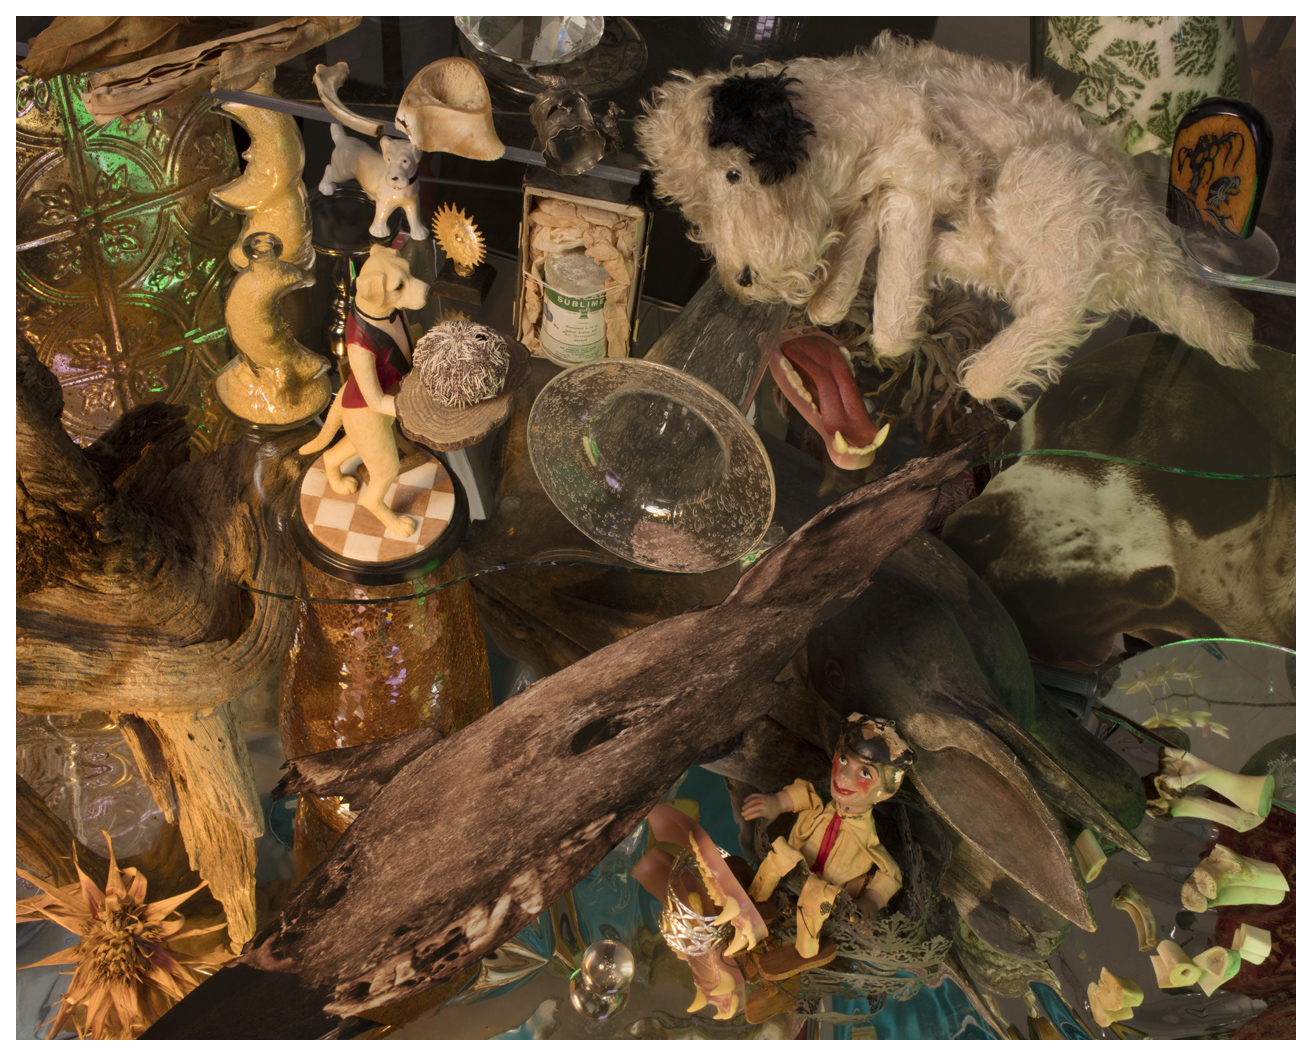 """Betwixt the Waning and Waxing Moon: Séance """"Dead Puppy to Holbein the Younger"""". Sublime! , 2019"""